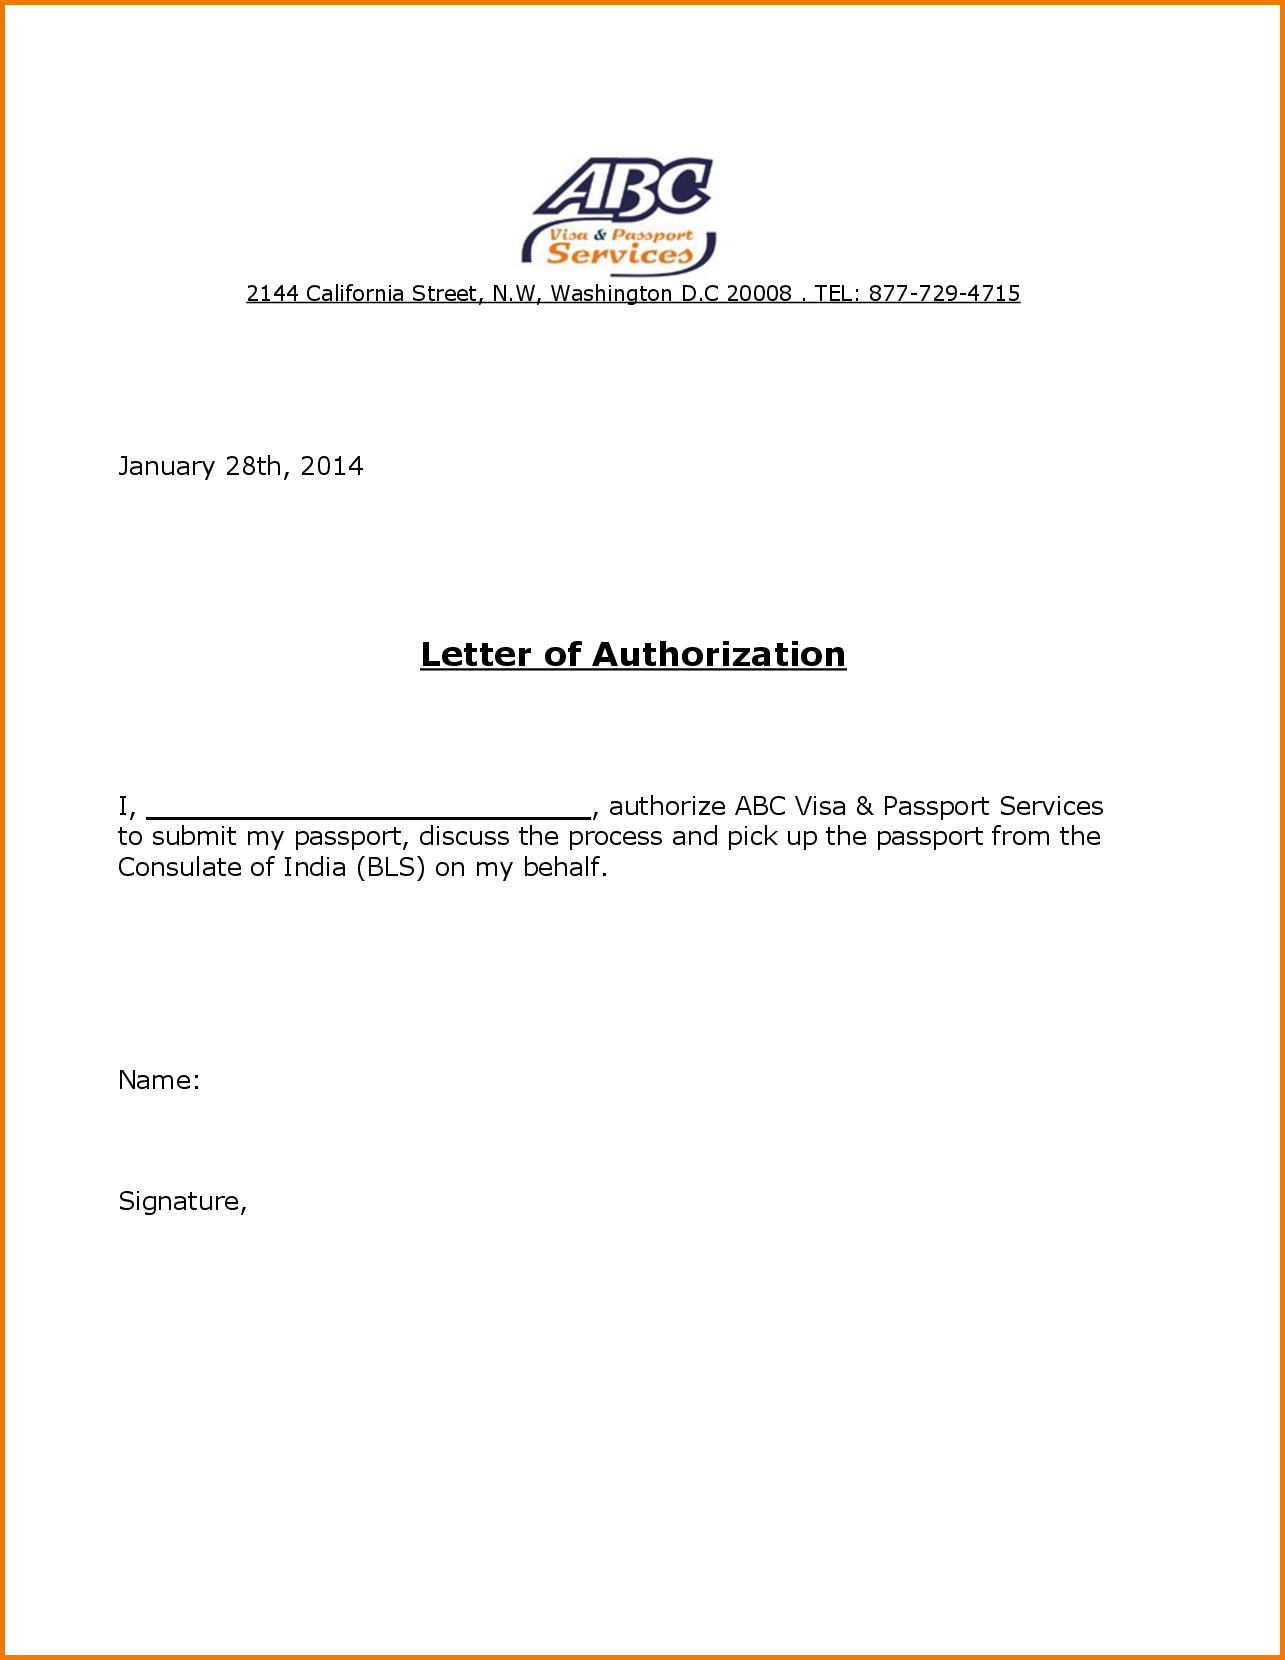 authorization letter behalf pdf samples act word excel | Pdf | Pinterest